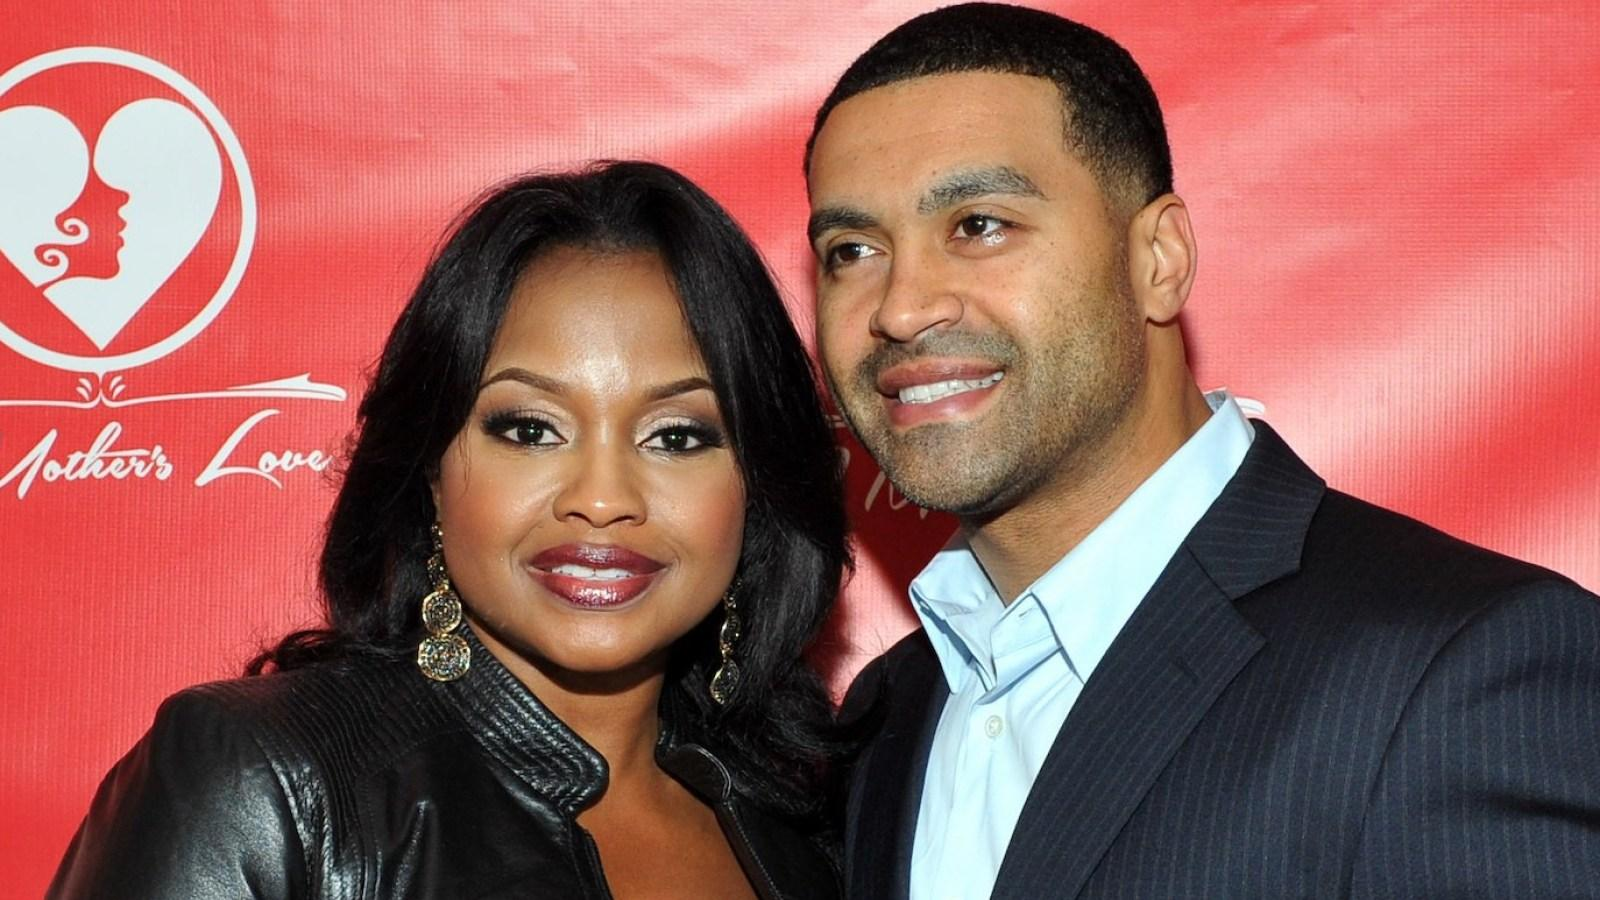 Phaedra Parks' Ex-Husband, Apollo Nida Was Reportedly Released From Prison